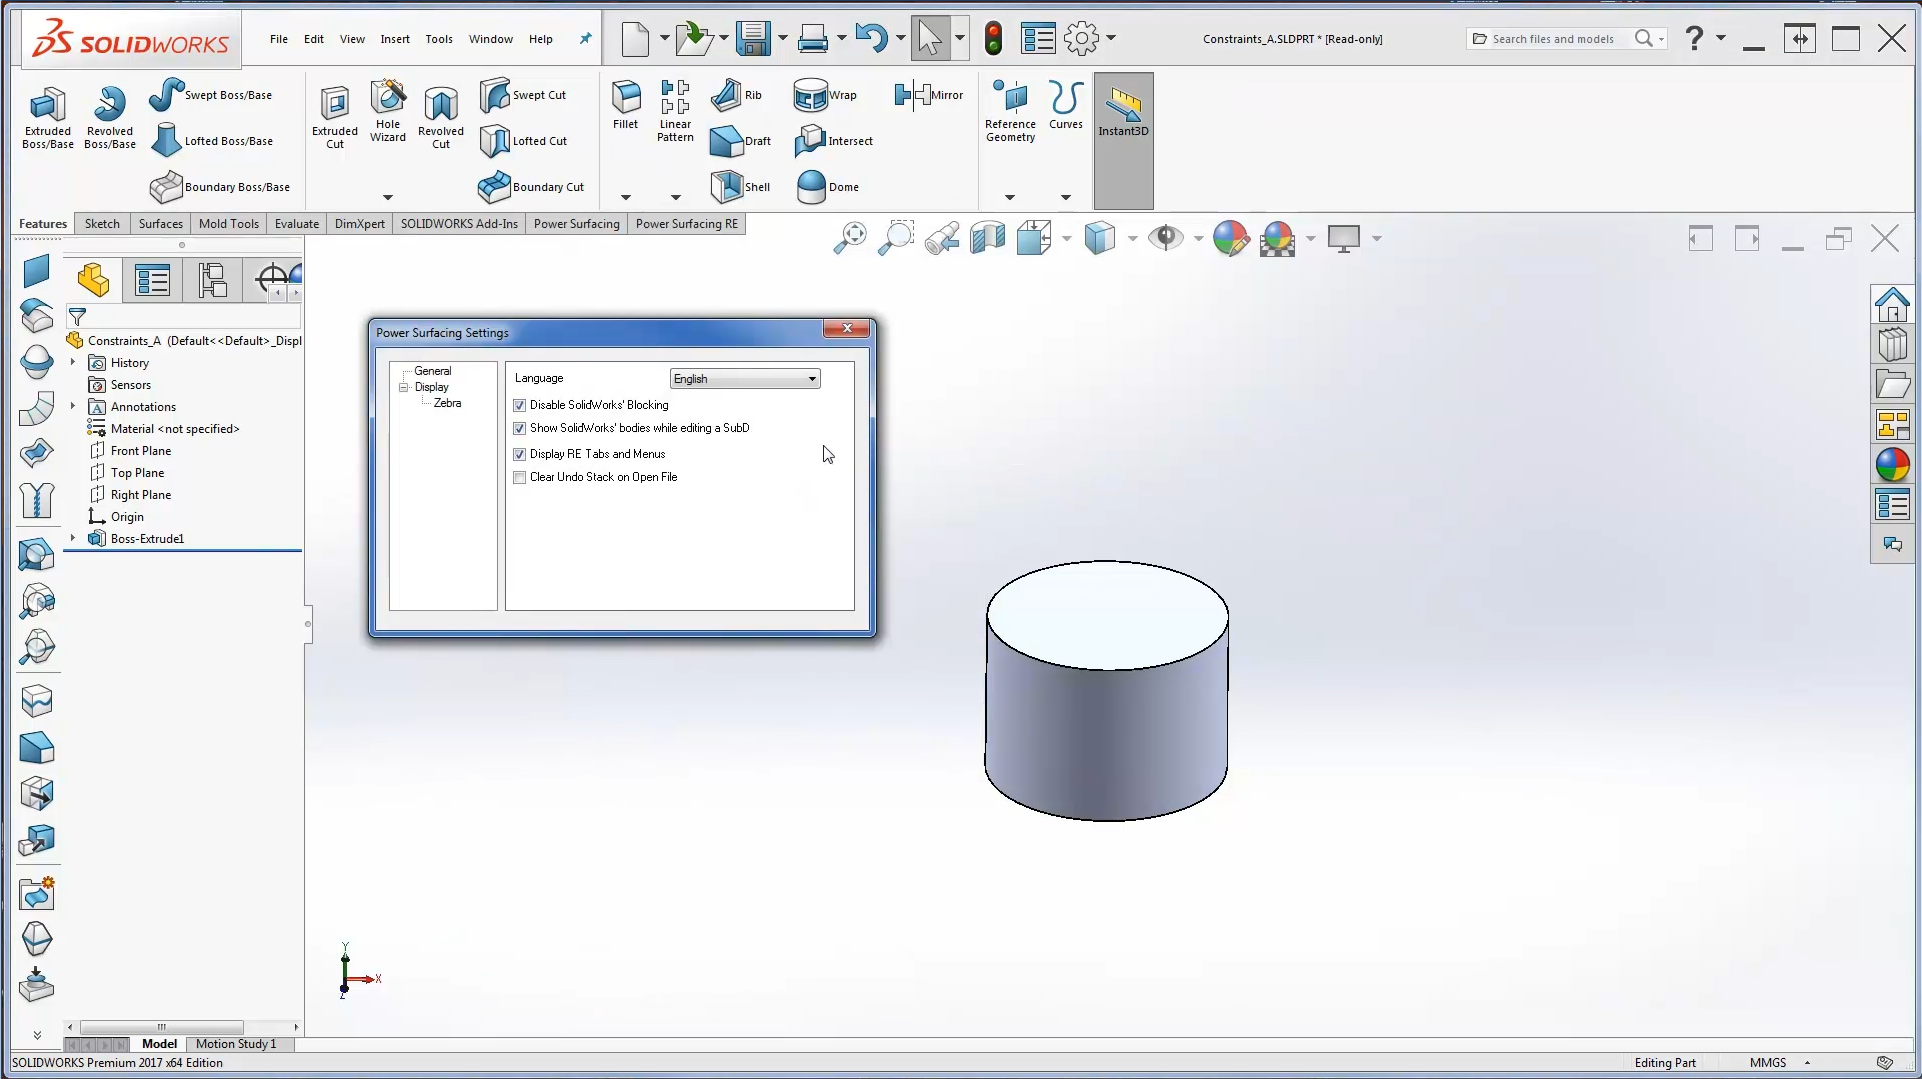 Power Surfacing for SolidWorks® Video Tutorials